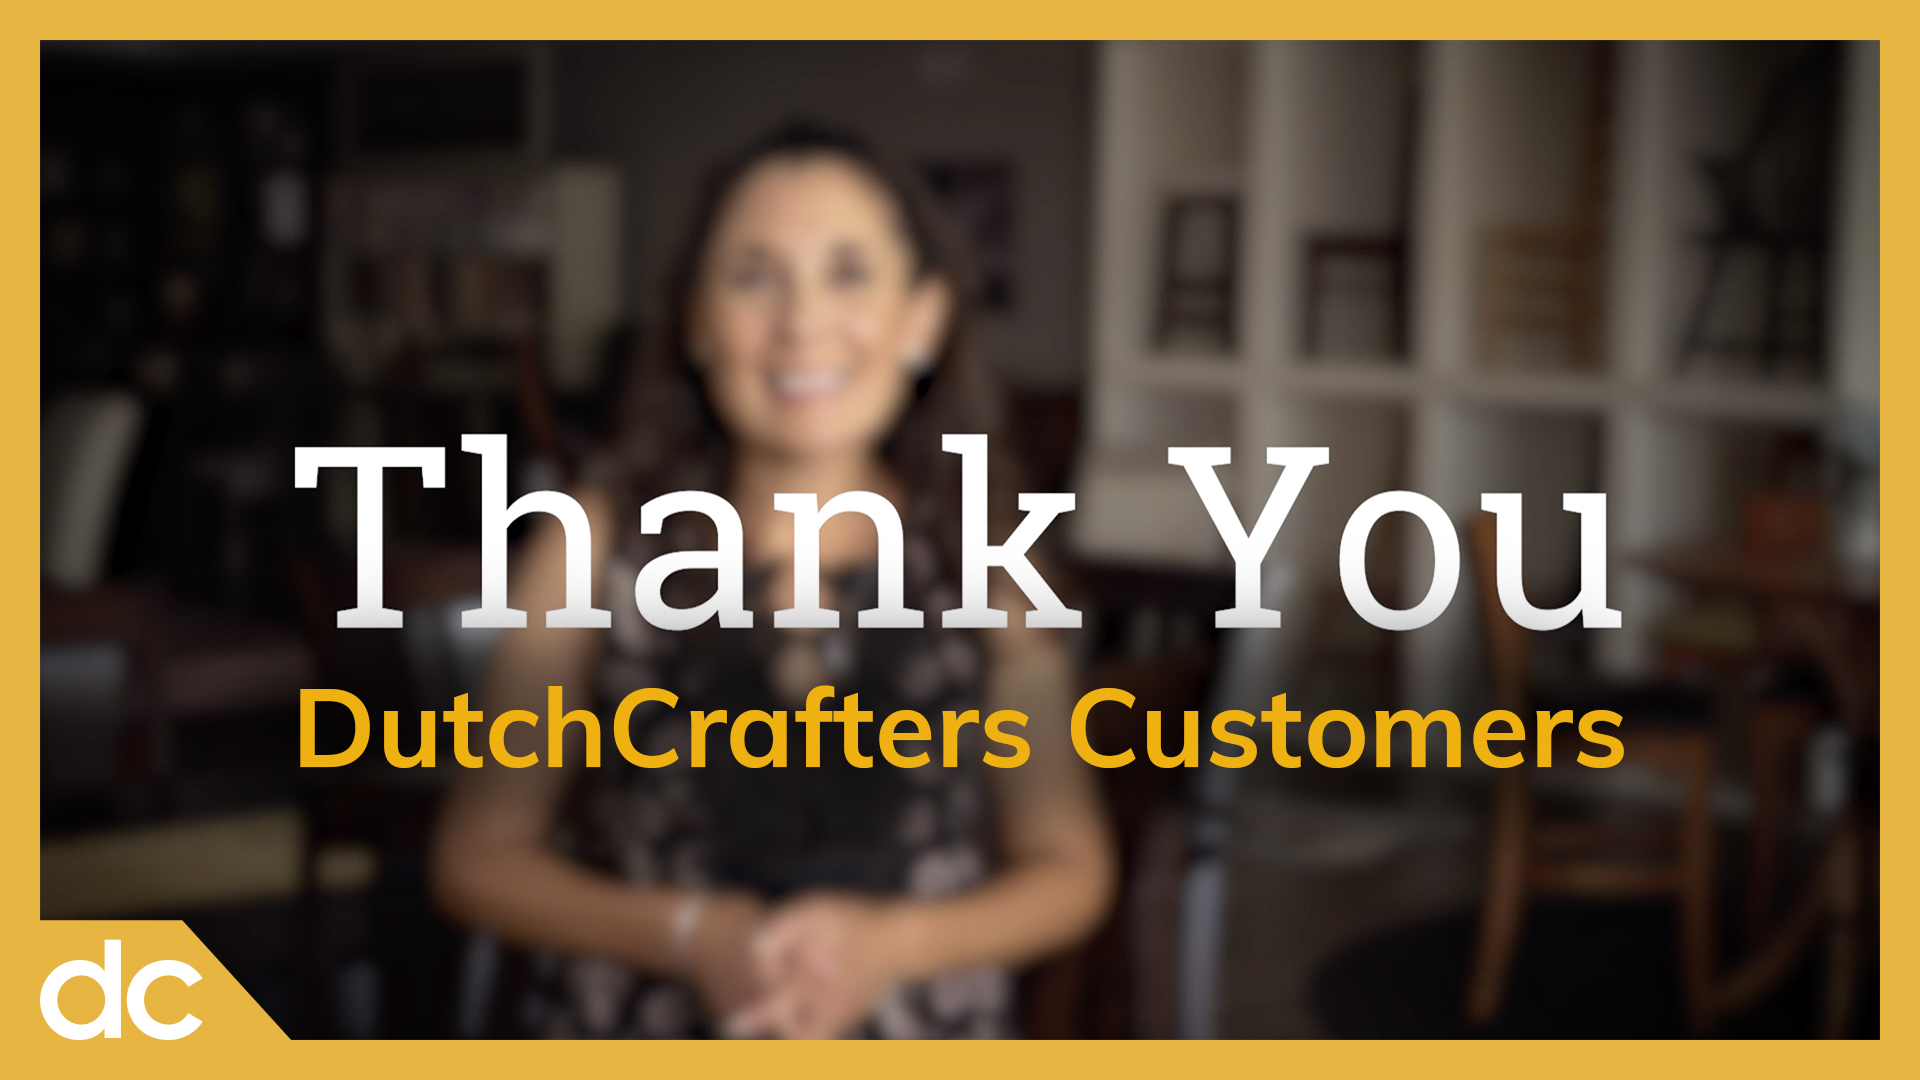 Thank You DutchCrafters Customers